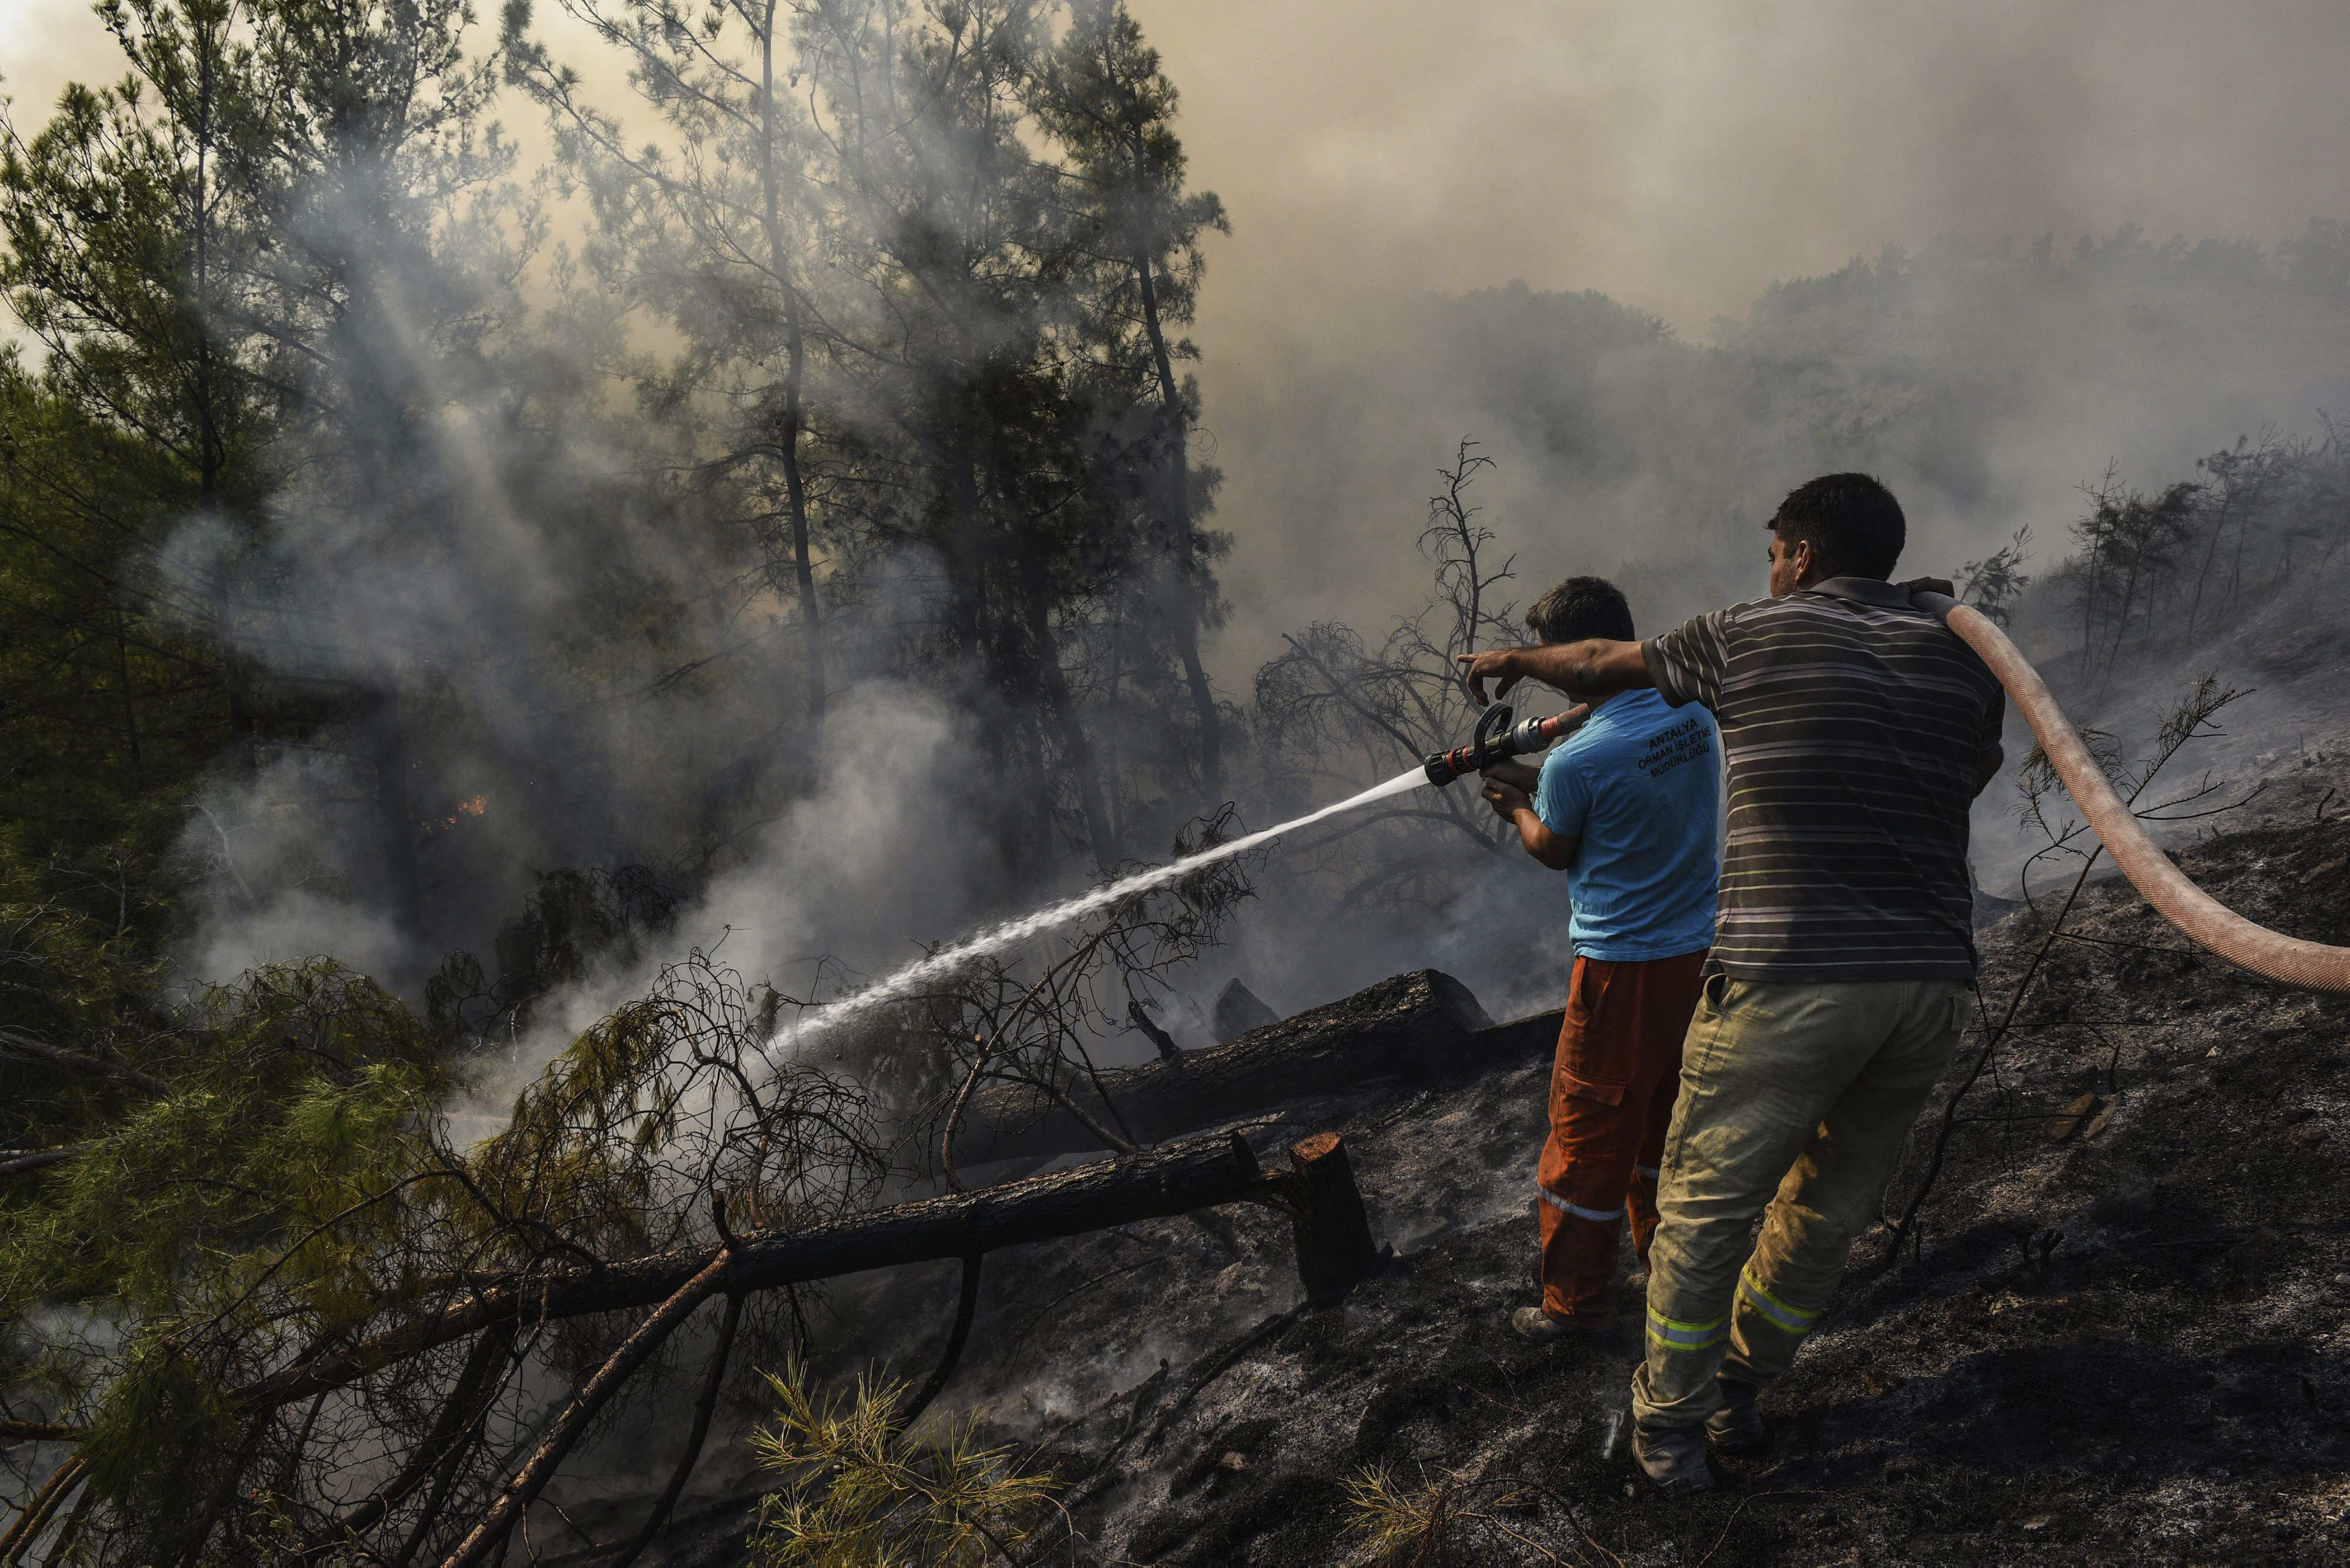 Villagers water trees to stop the wildfires that continue to rage the forests in Manavgat, Antalya, Turkey, early Sunday, Aug. 1, 2021.  (AP Photo)